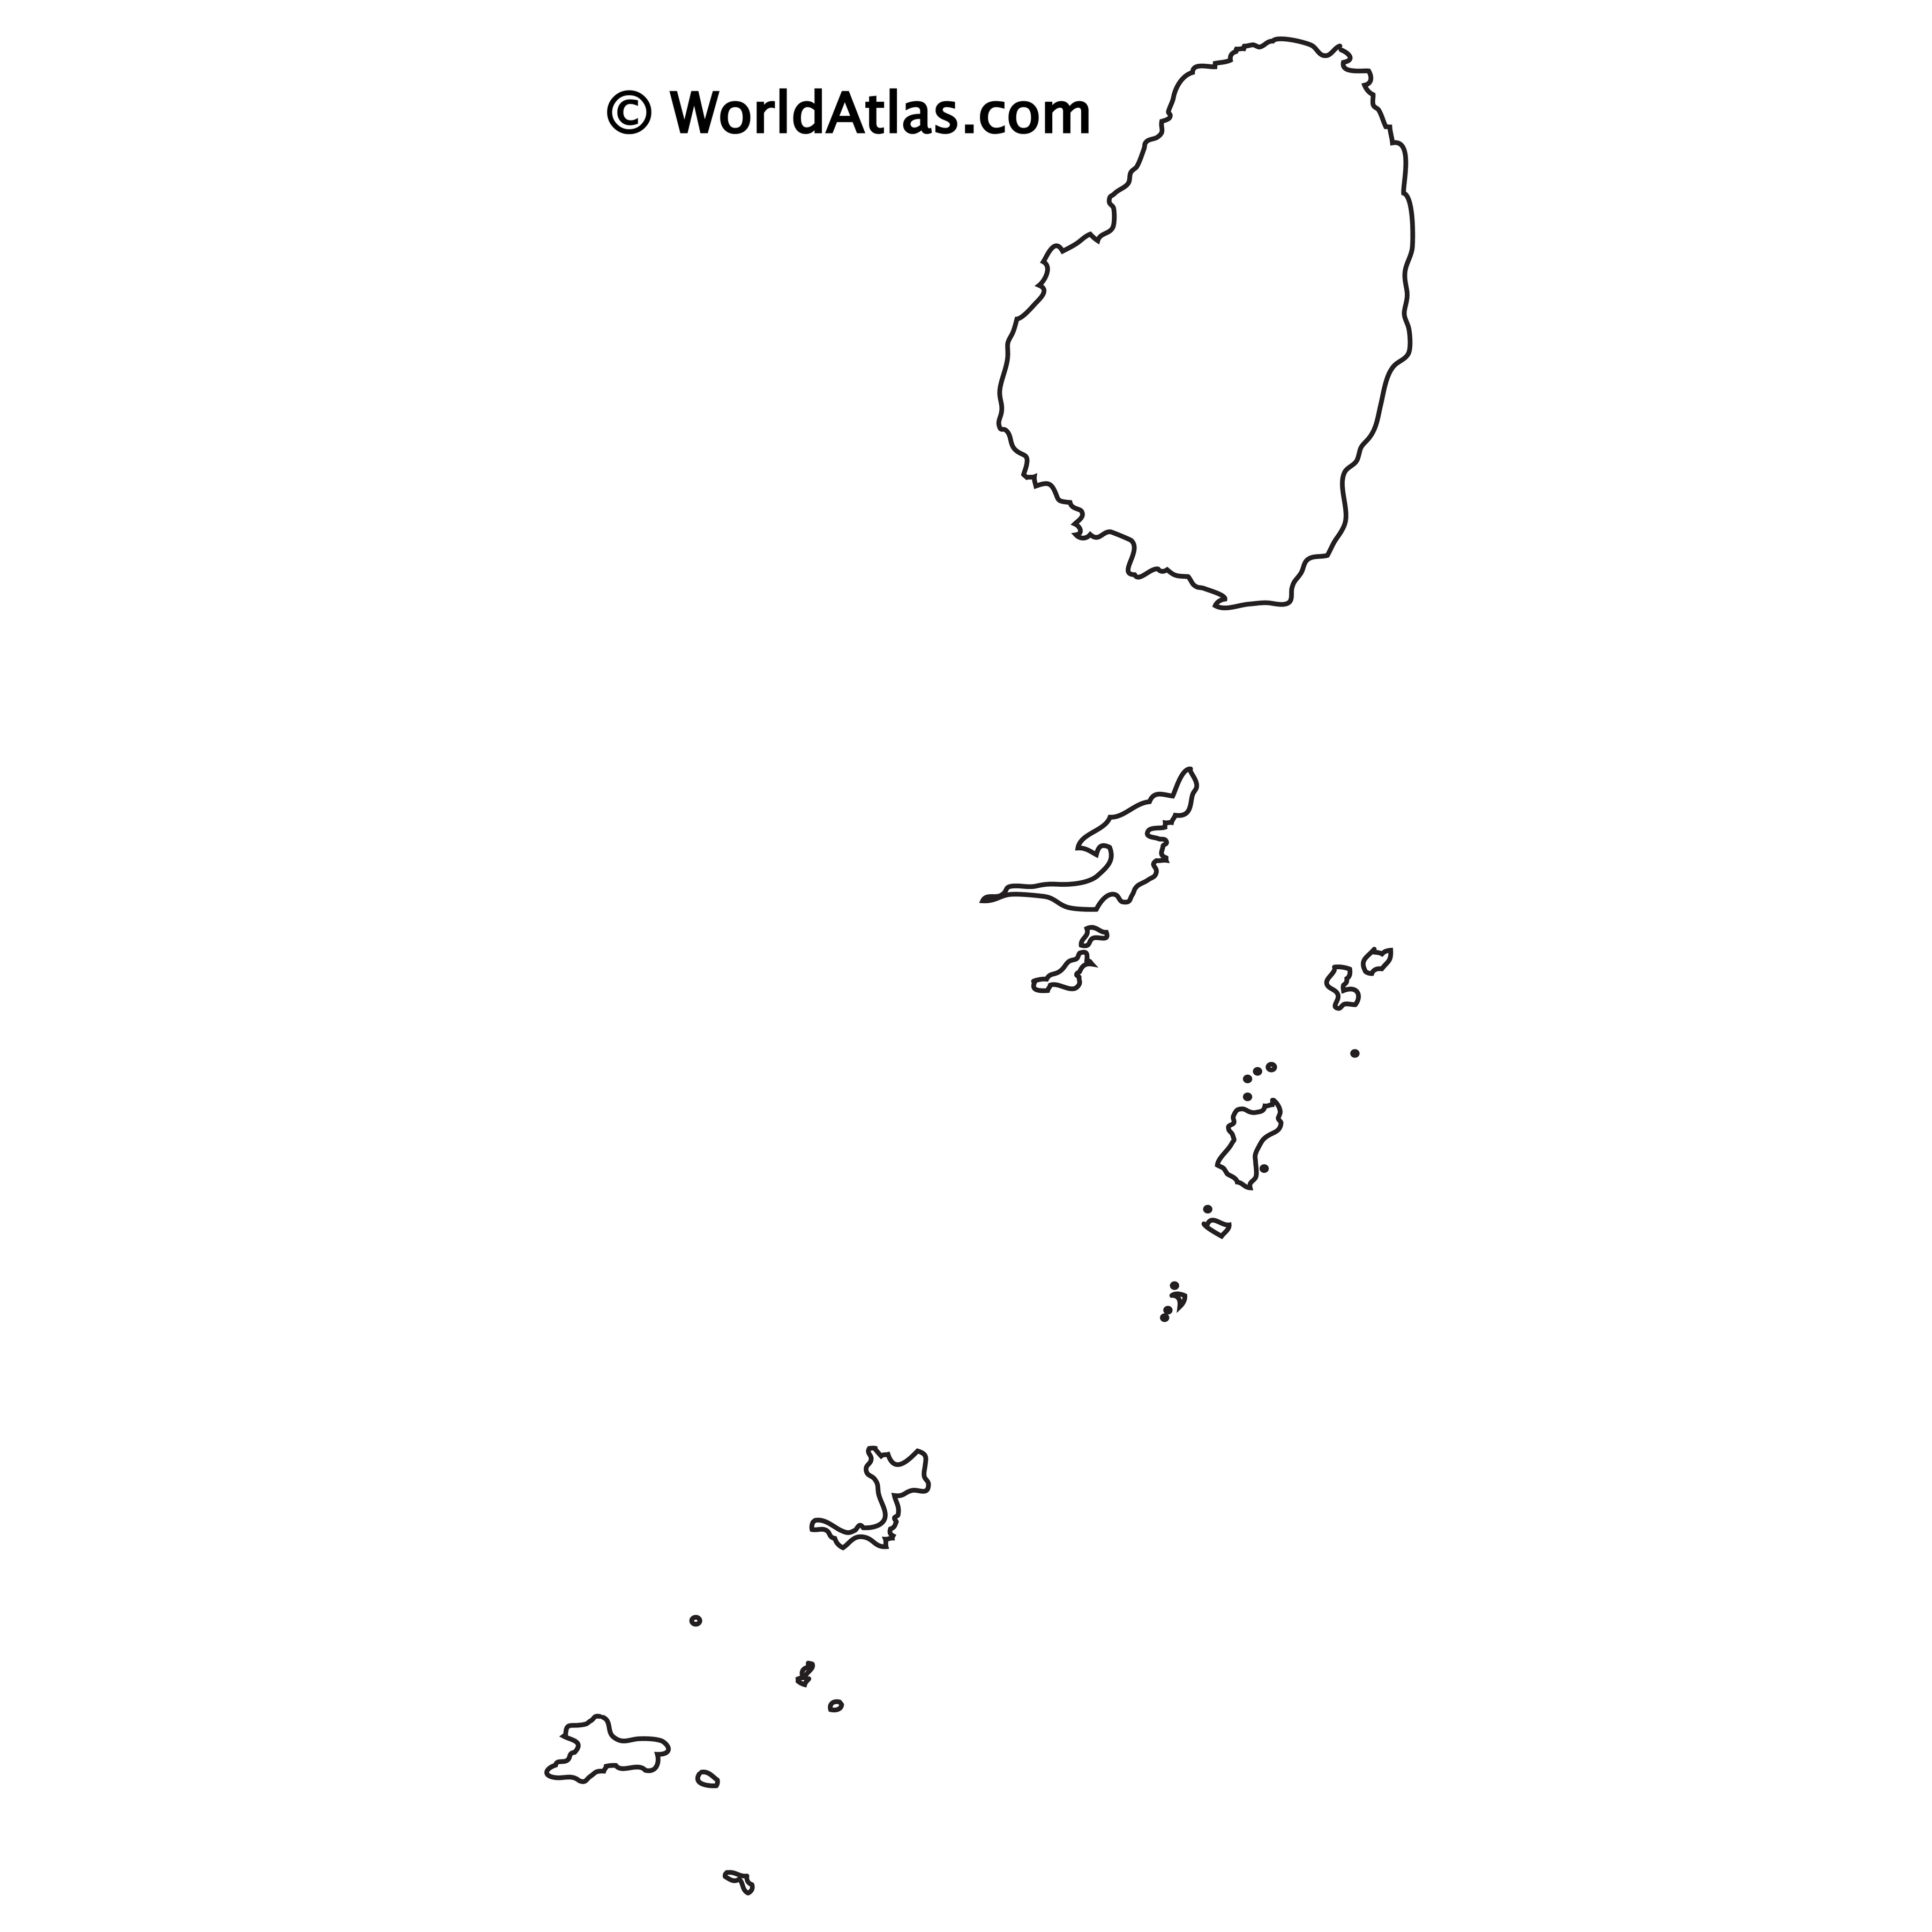 Blank Outline Map of St. Vincent and the Grenadines